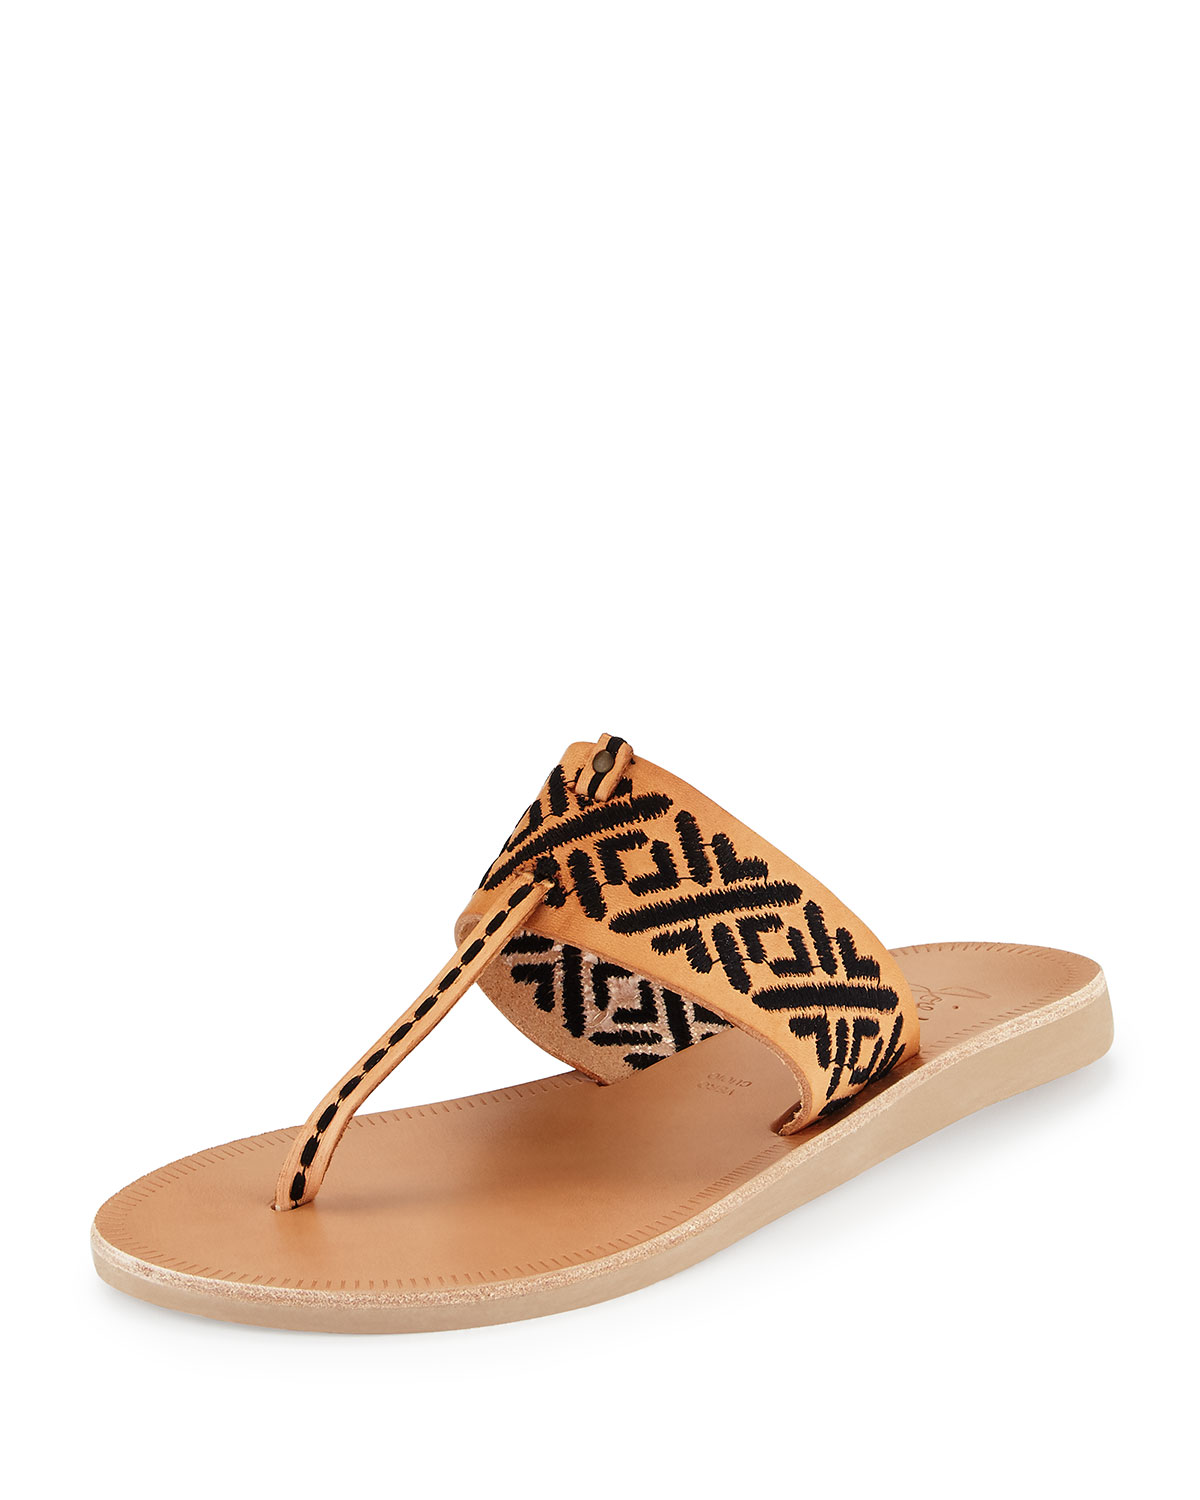 excellent online Joie Embroidered Thong Sandals clearance shop sale recommend sale clearance 3ocWm